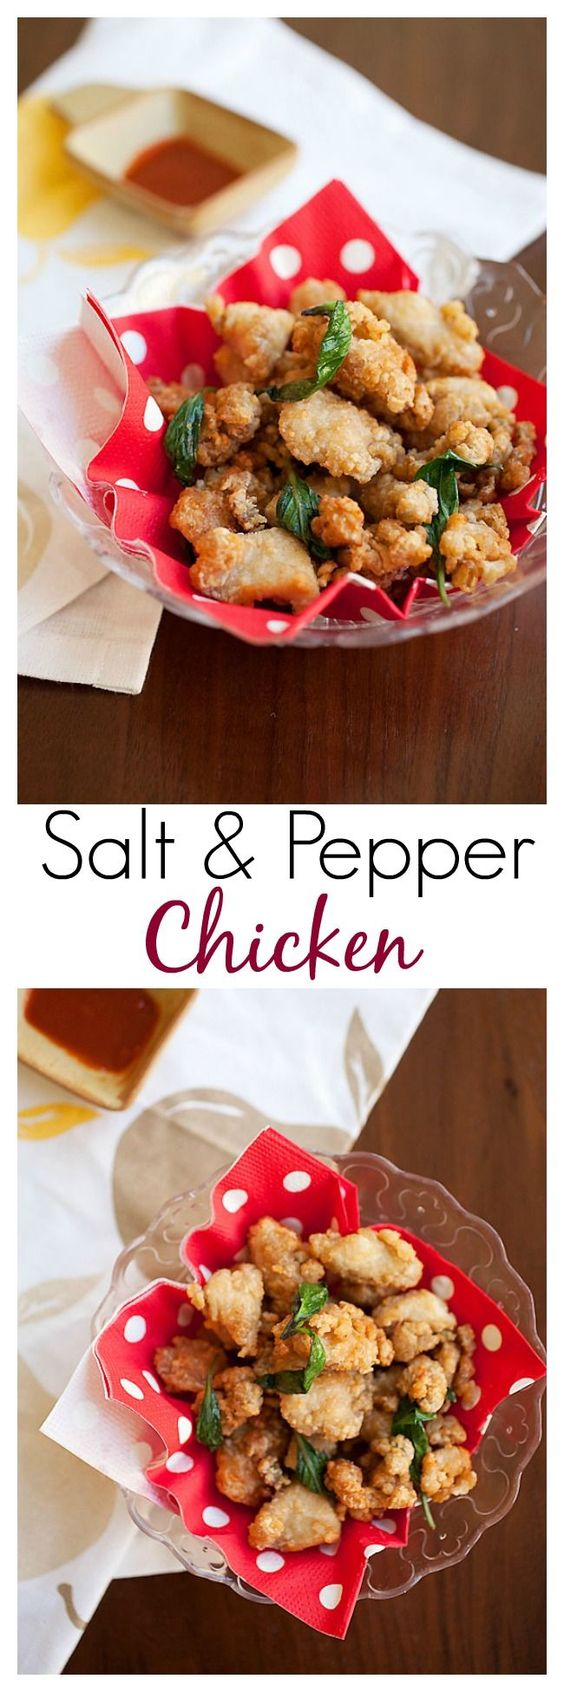 Taiwanese Salt and Pepper Chicken or Popcorn Chicken - Crispy fried marinated chicken with basil leaves.